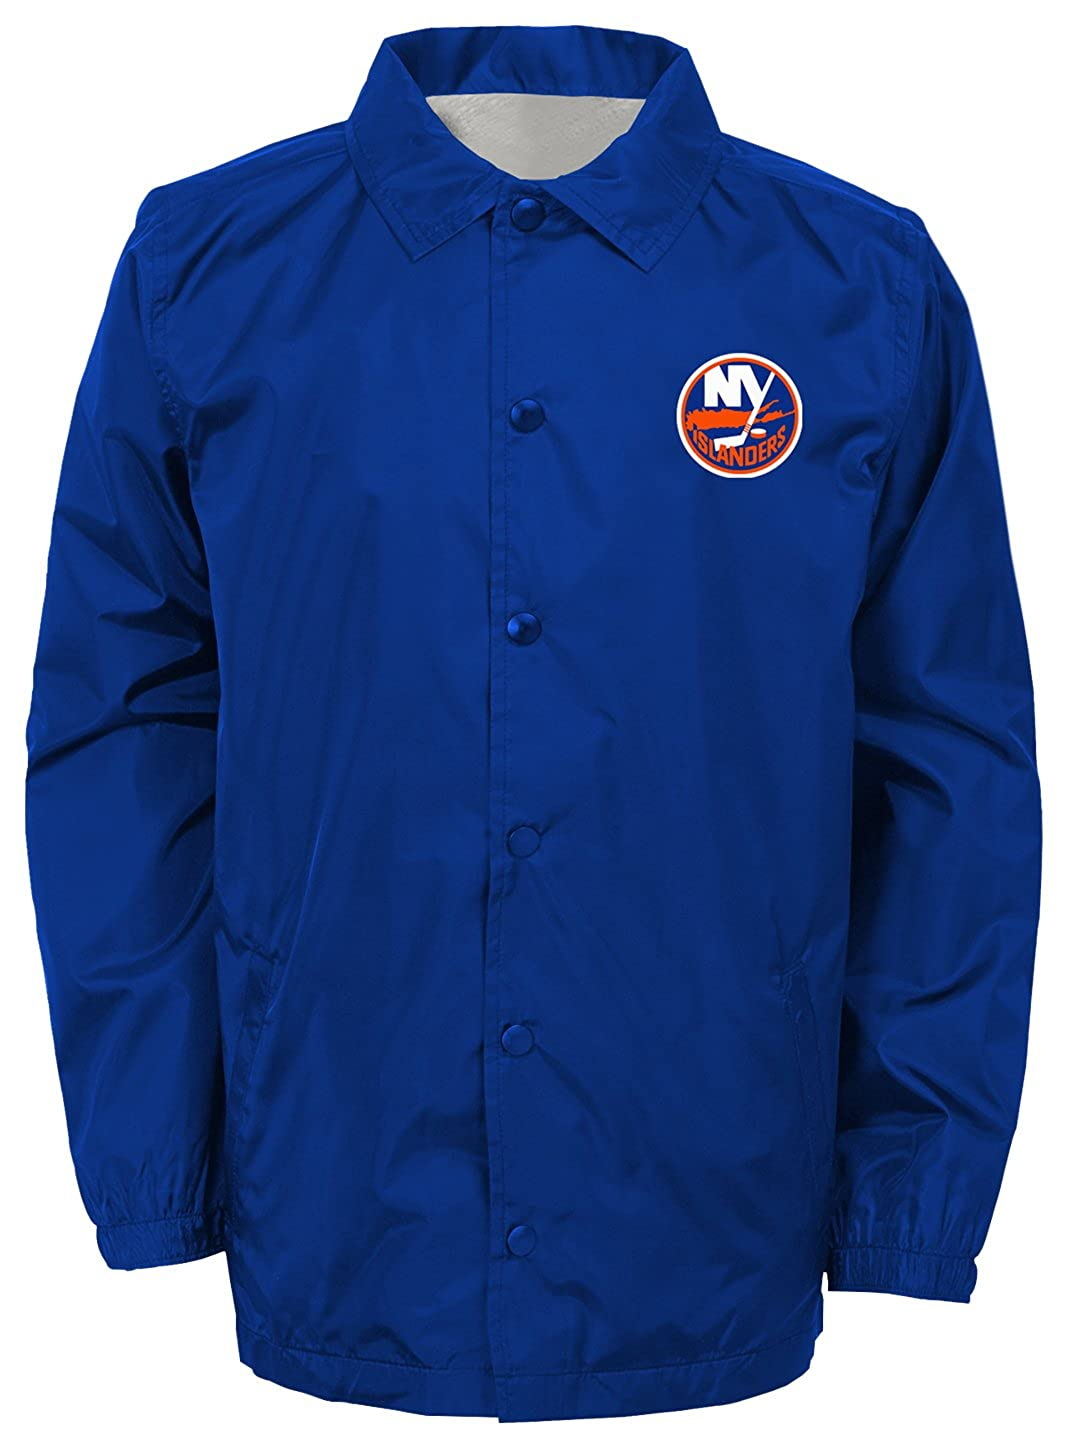 Outerstuff NHL Youth Boys Bravo Coaches Jacket